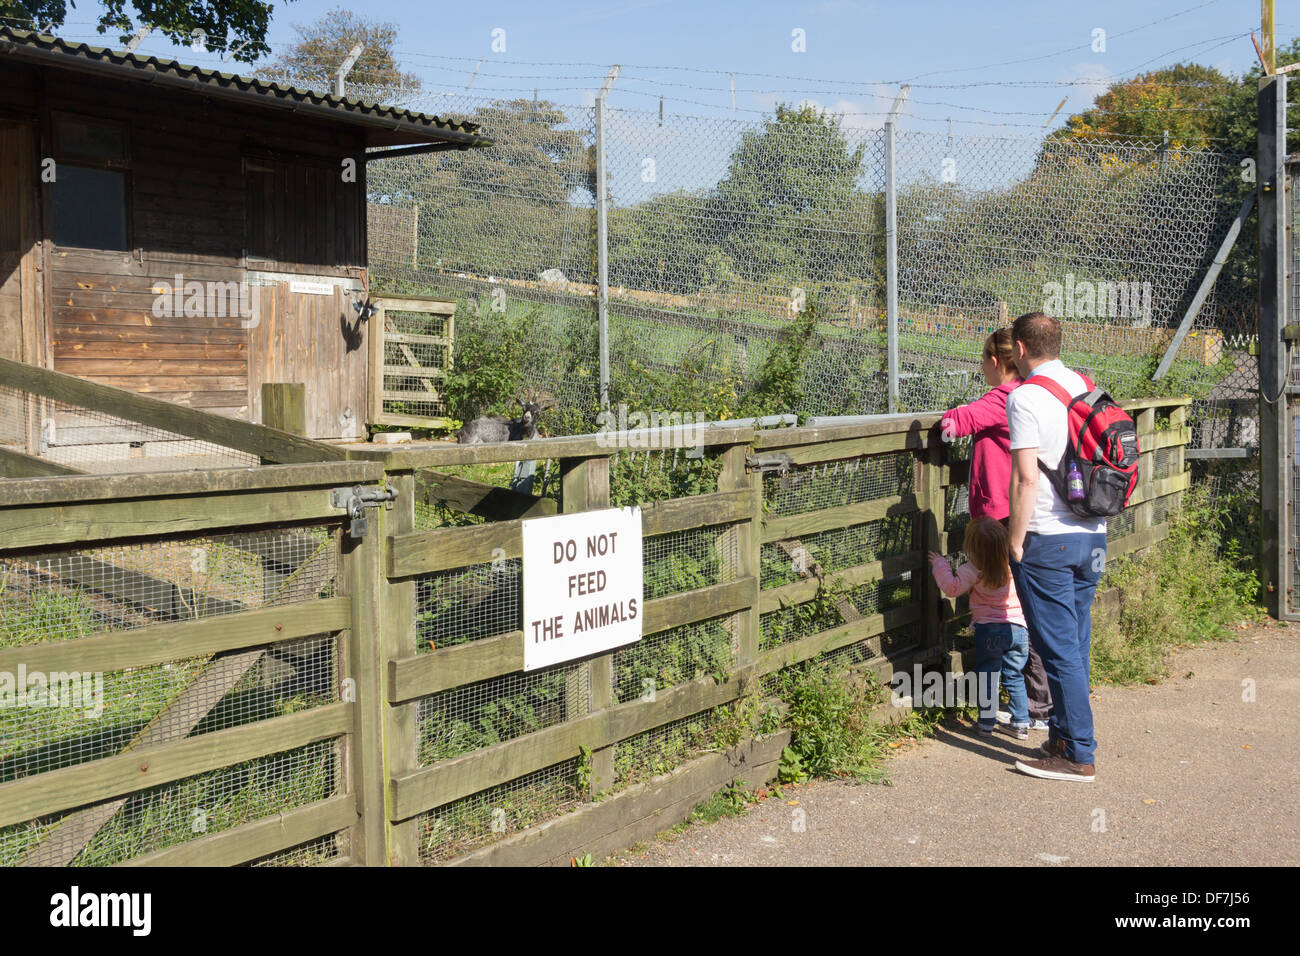 Young family viewing a pygmy goat at the Animal World attraction at Moss Bank Park, Bolton, on its final weekend of operation. - Stock Image